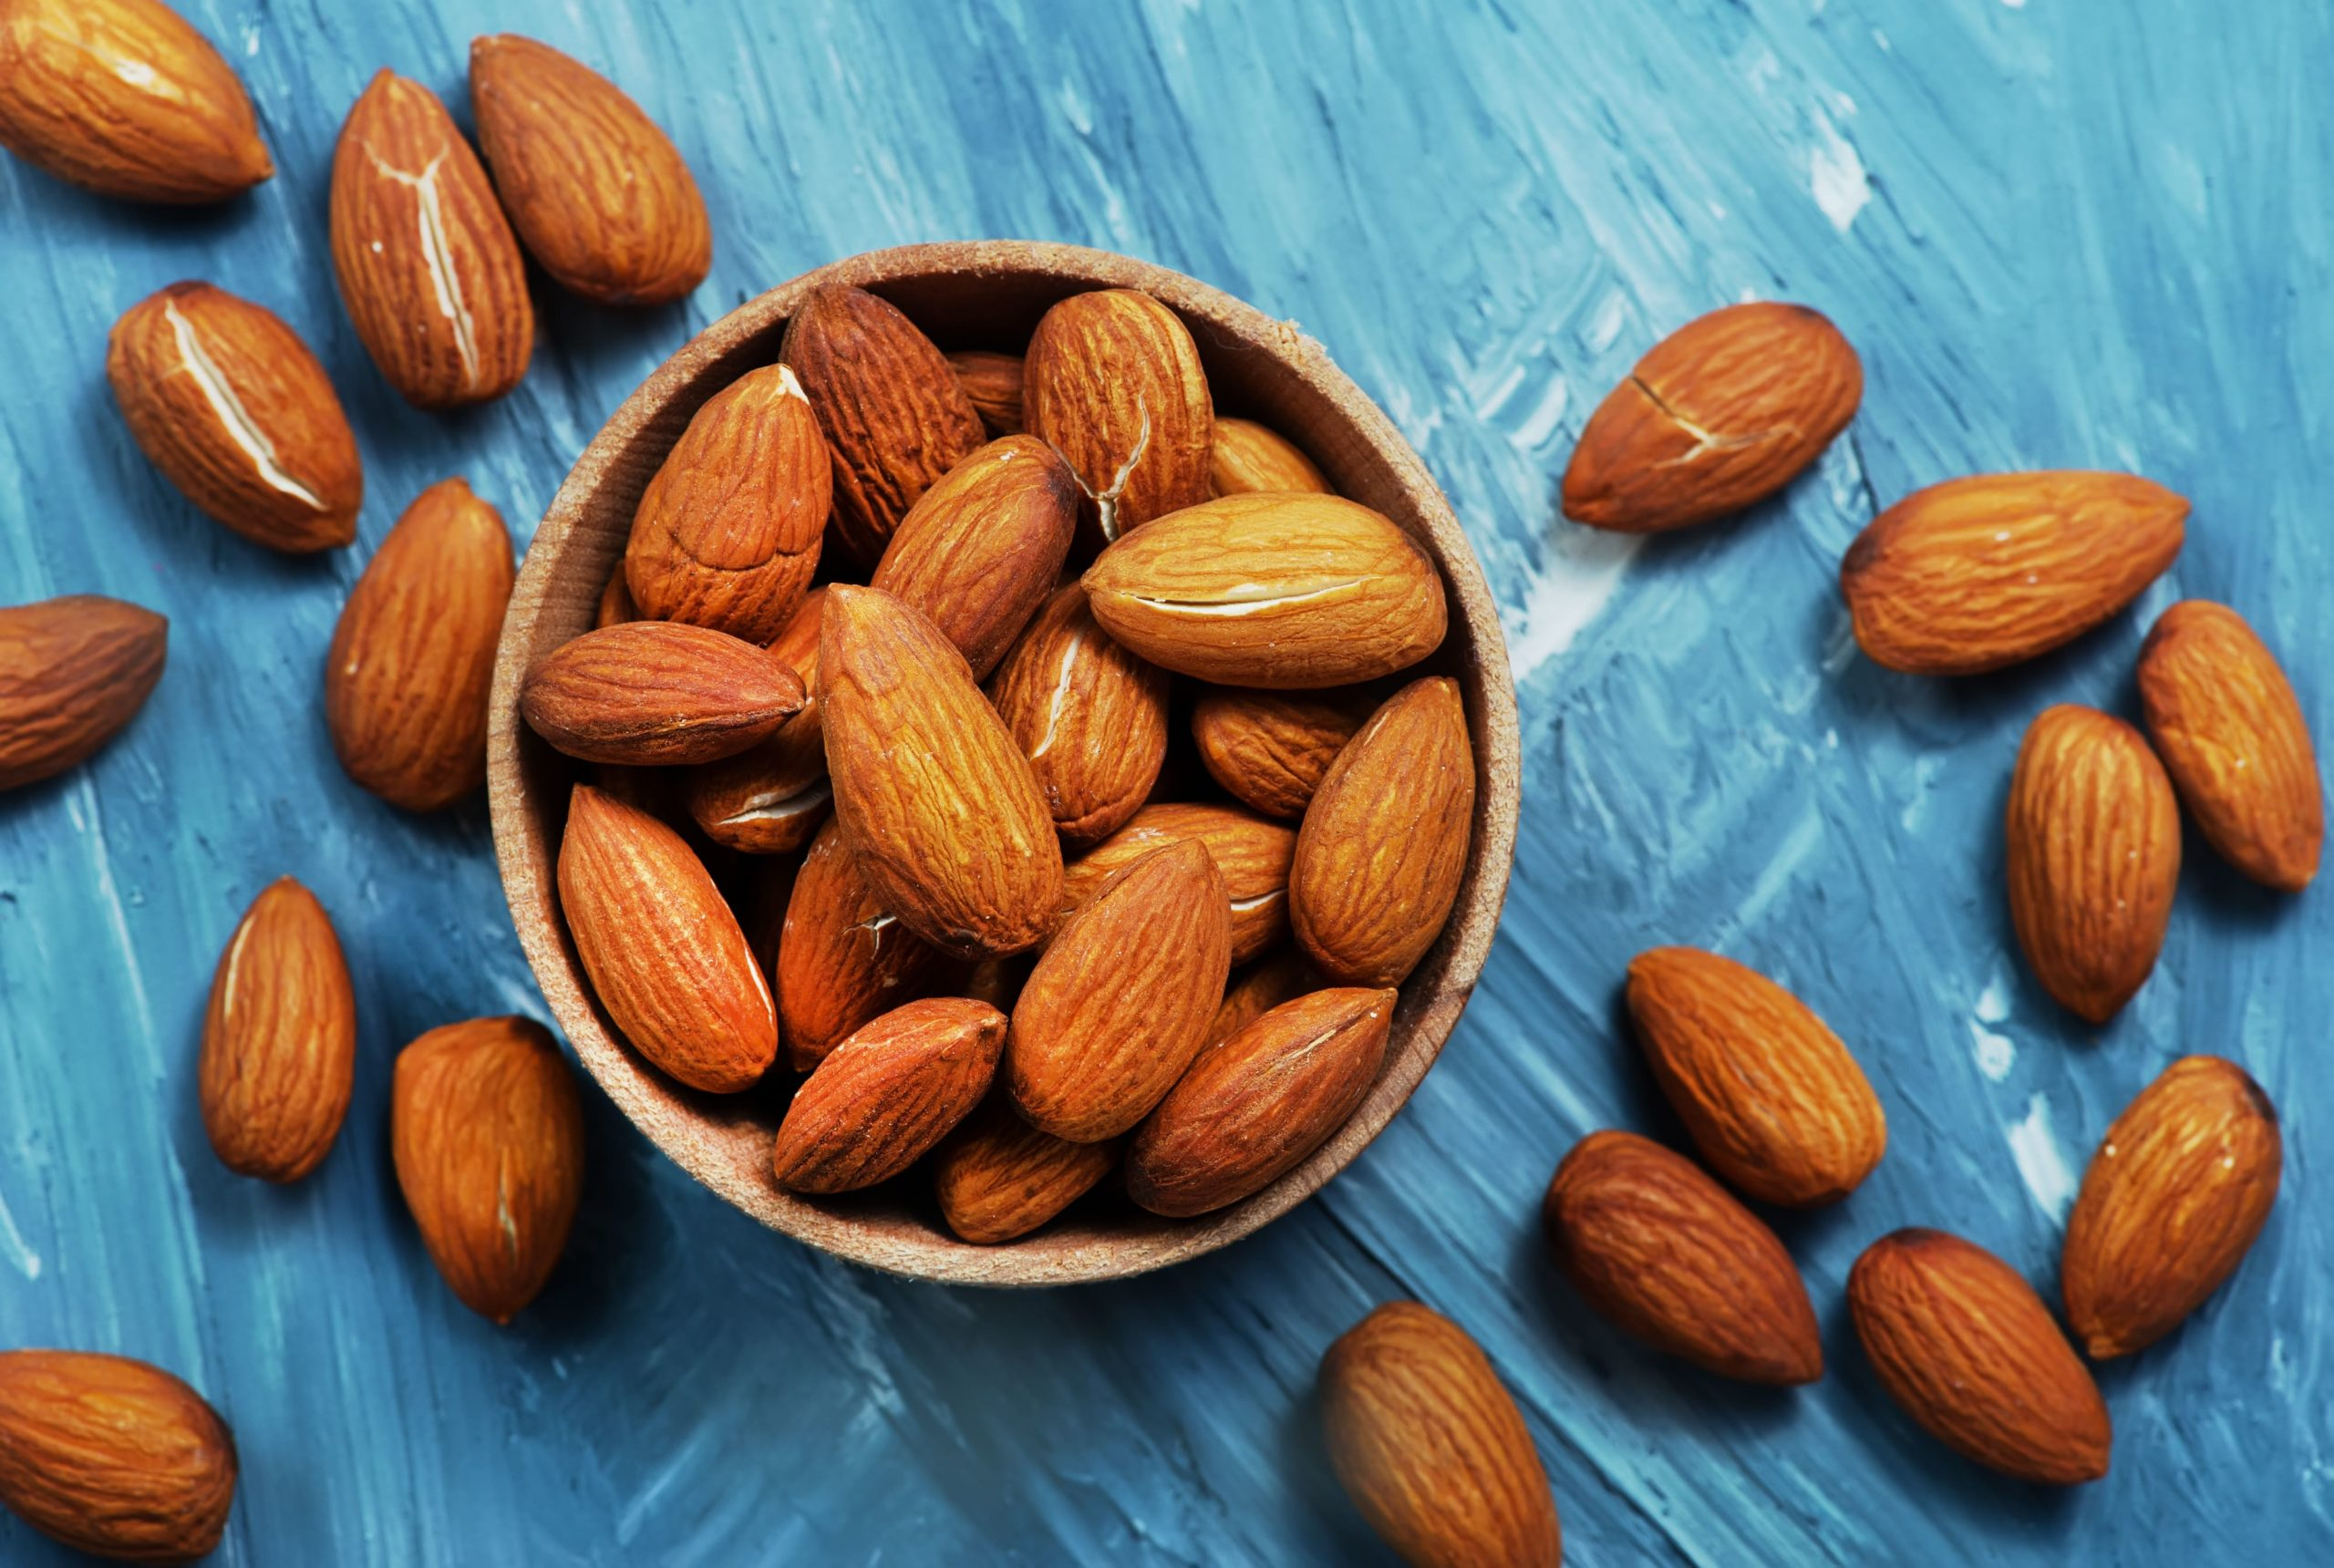 10 Health Benefits Of Almonds